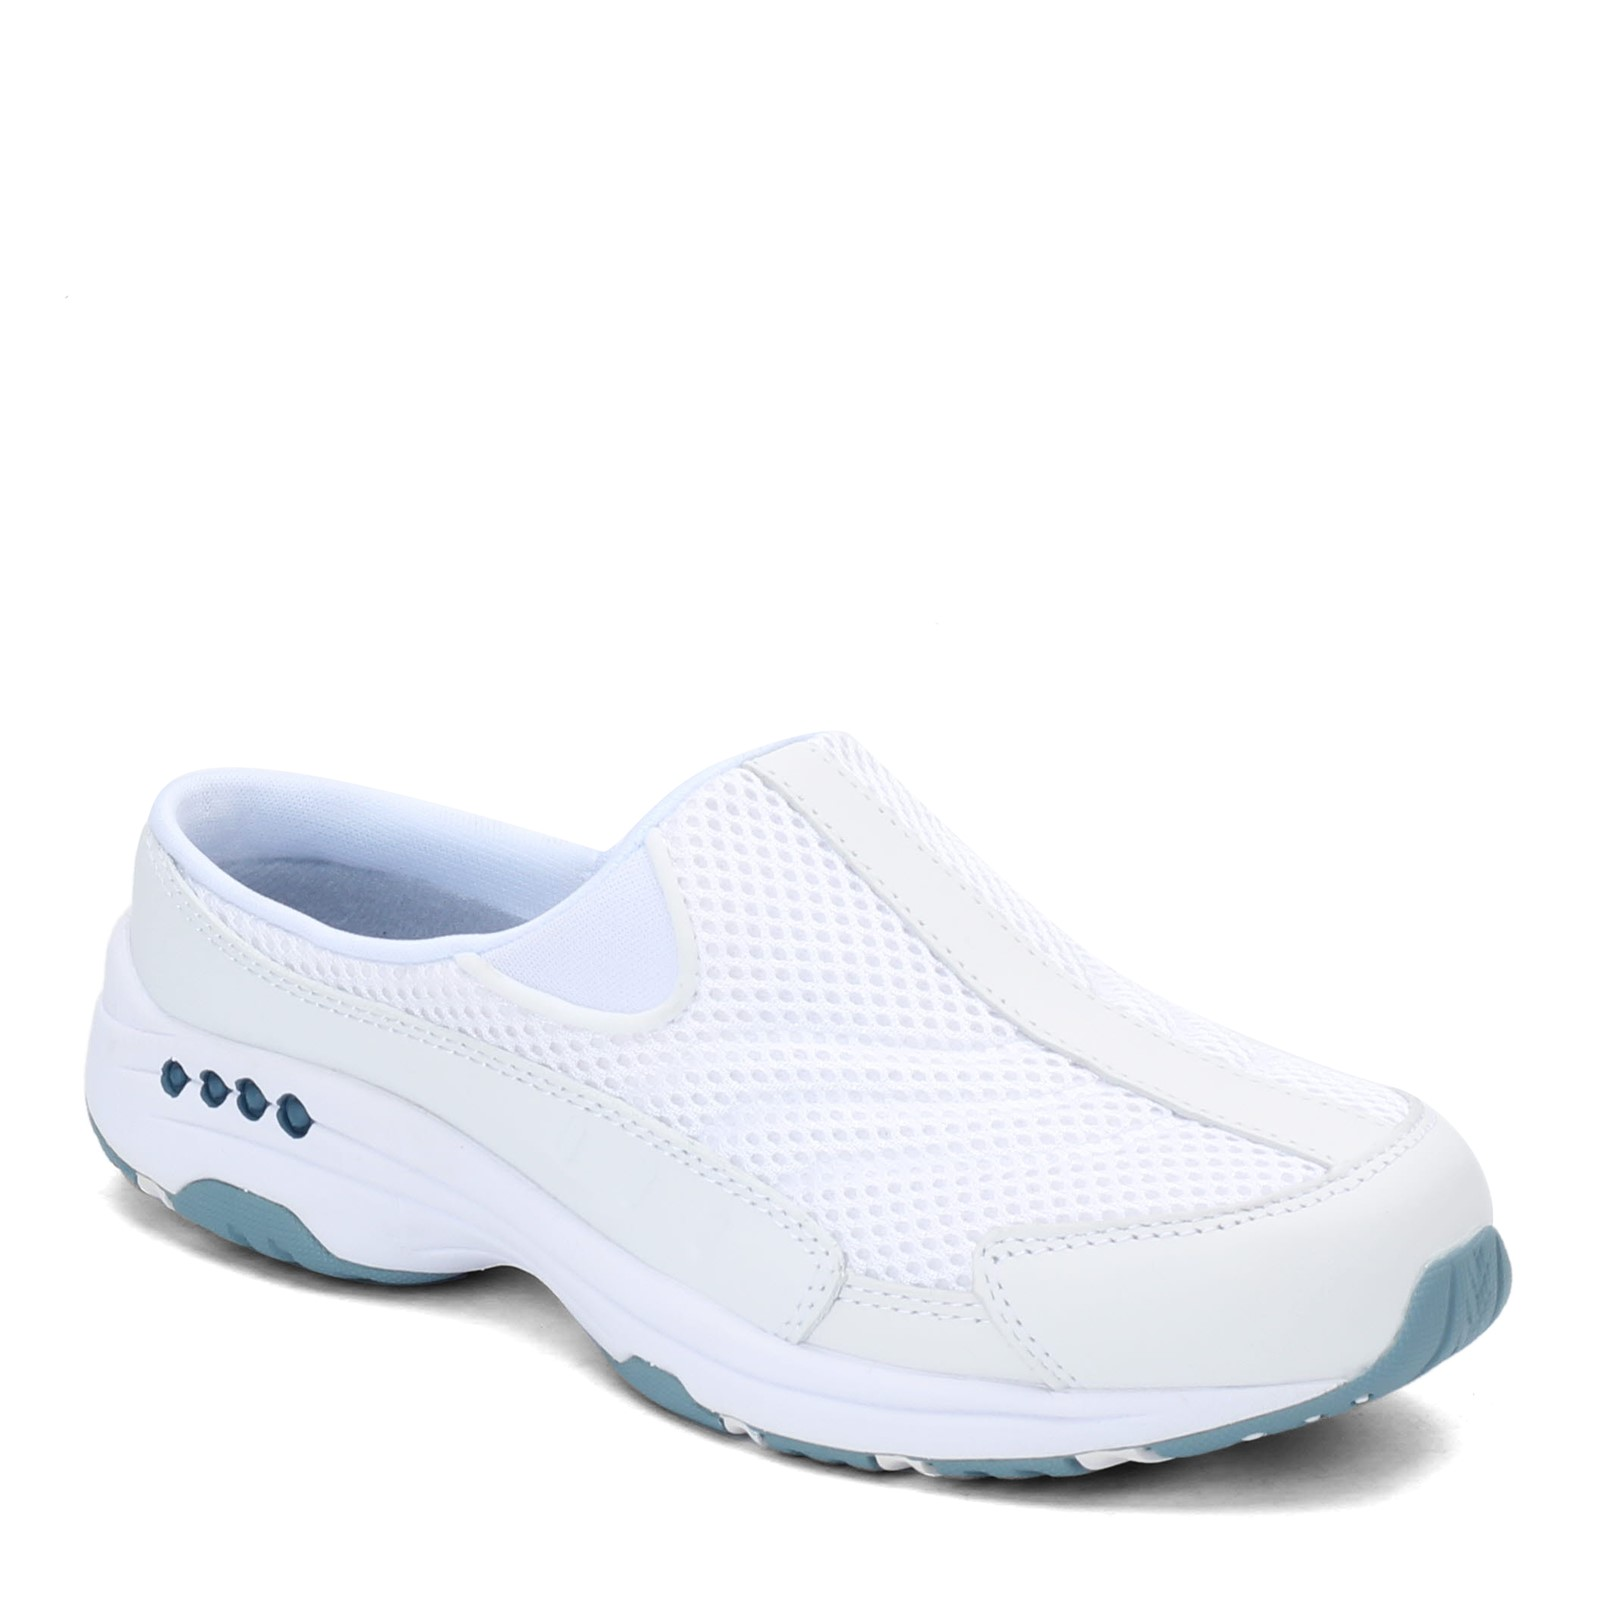 Women's Easy Spirit, Traveltime Classic Clog